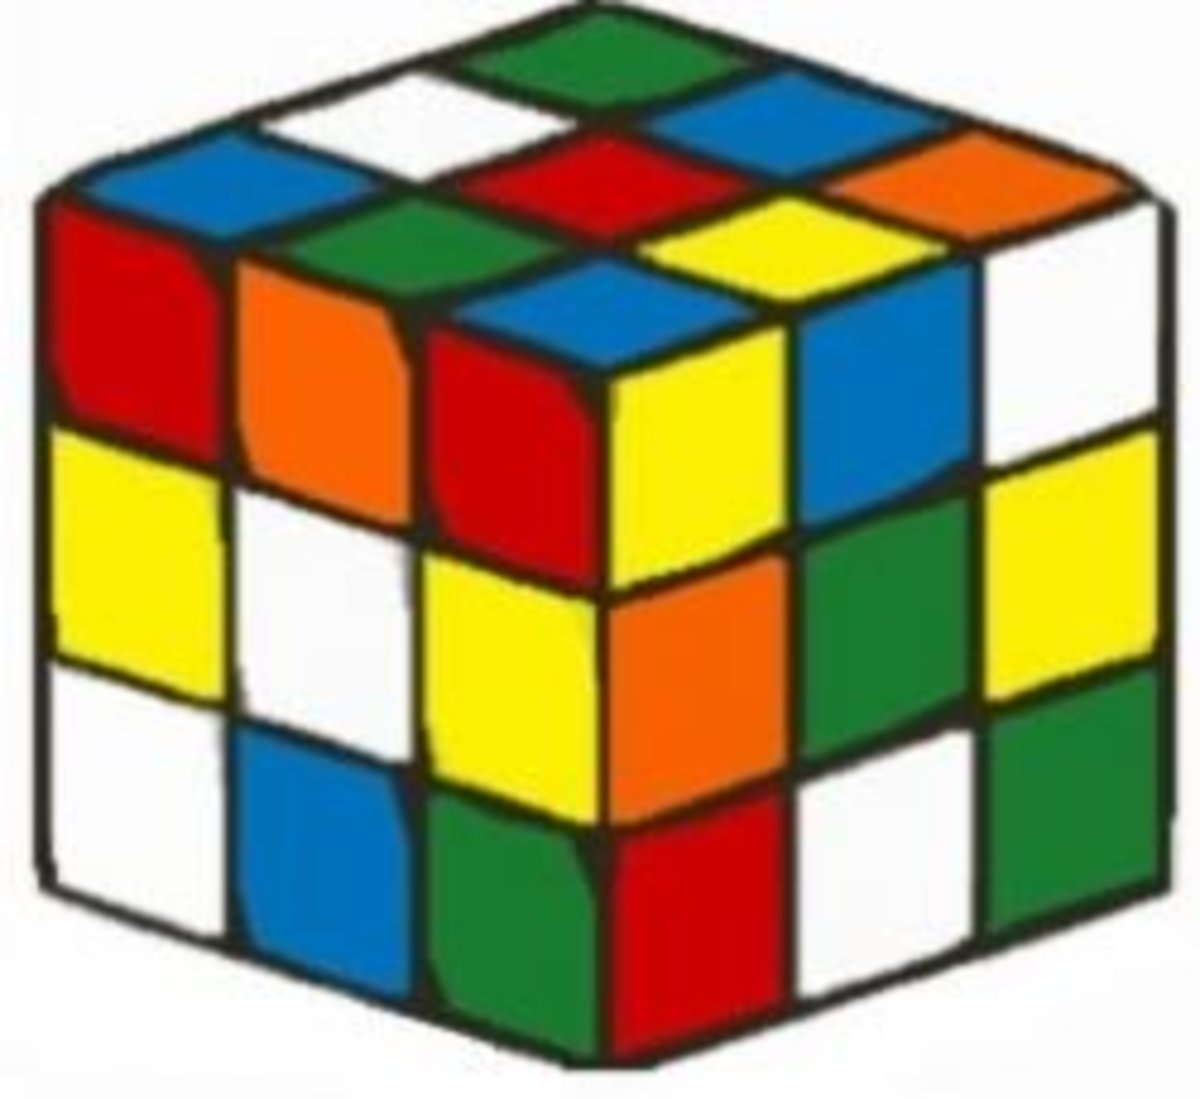 How to Solve a 3x3x3 Rubik's Cube Easily